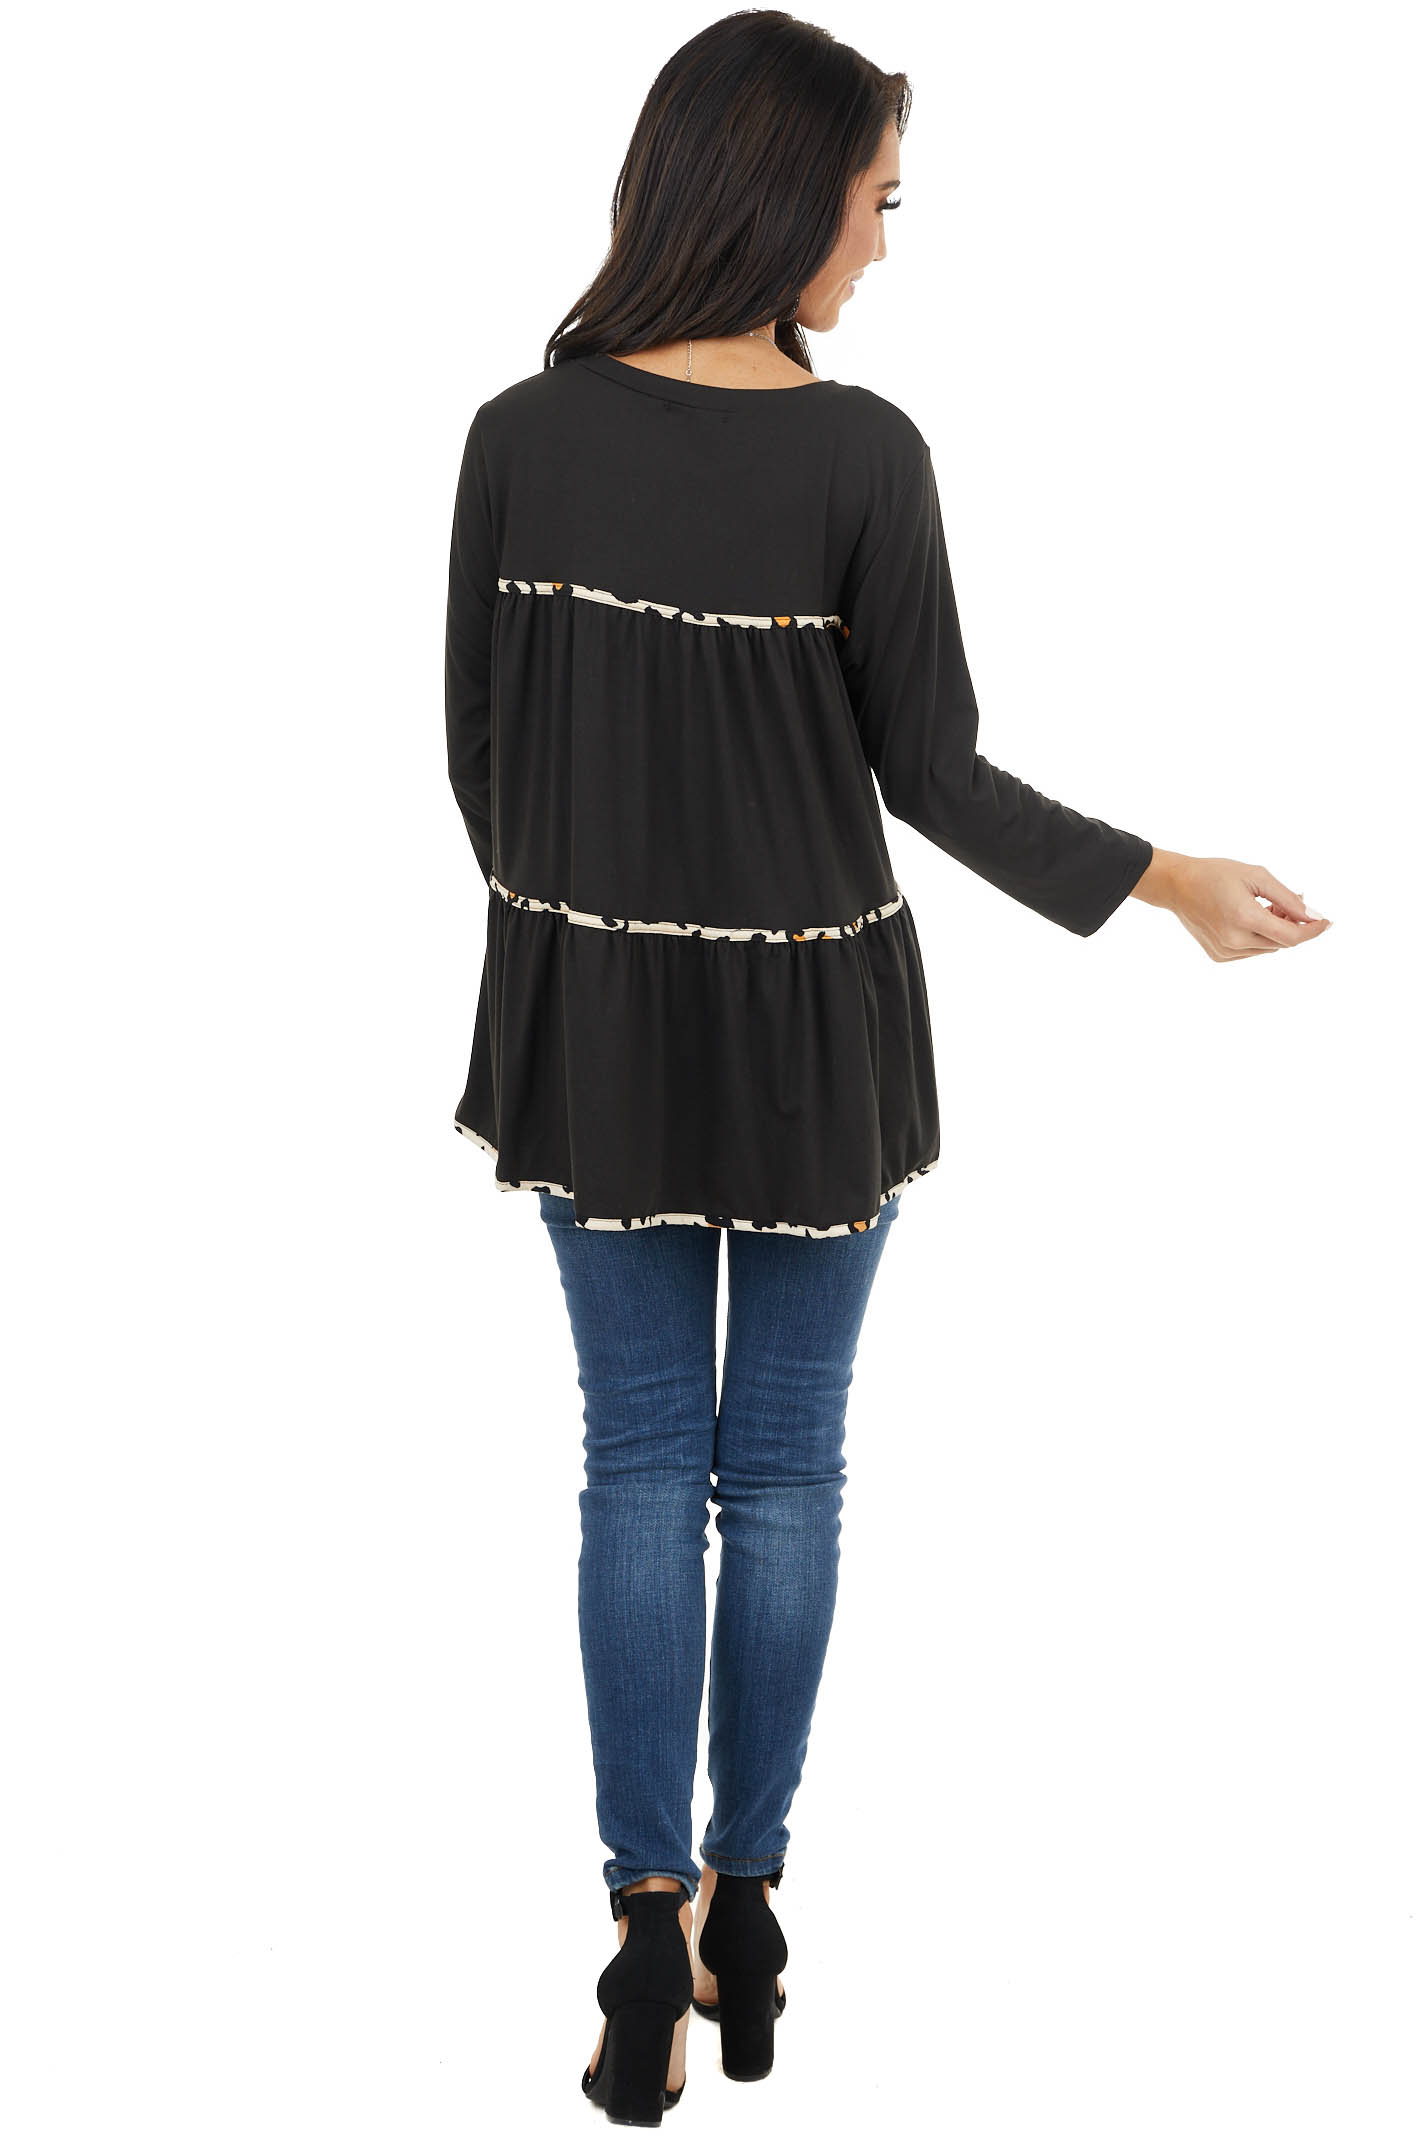 Black Tiered Long Sleeve Top With Leopard Print Details